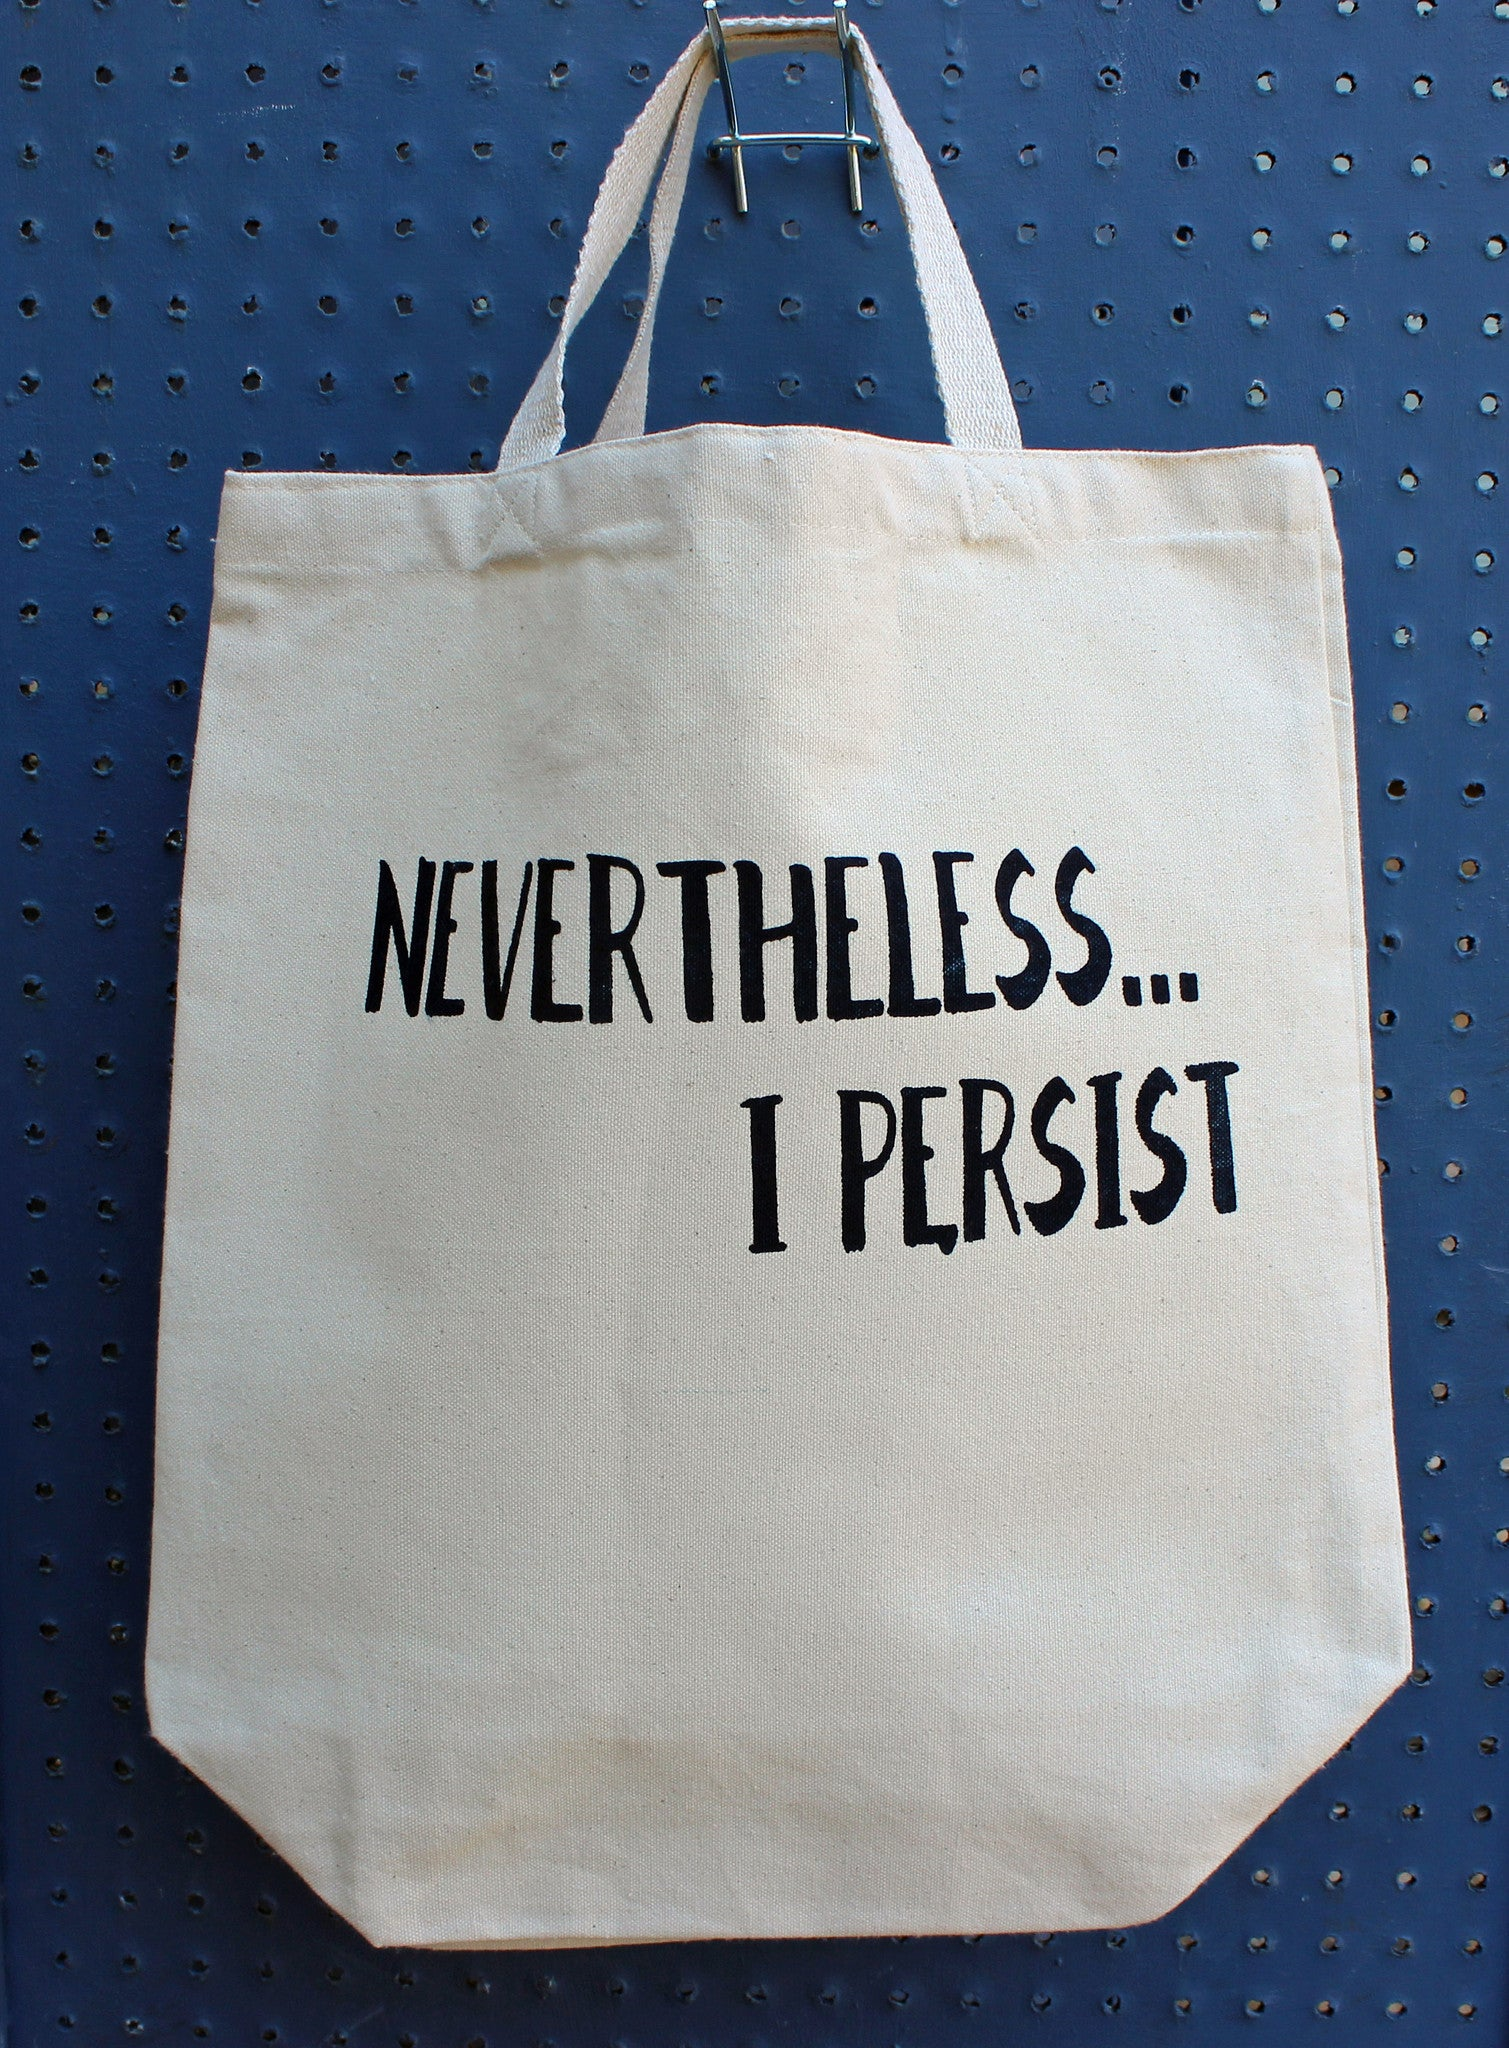 nevertheless...i persist - tote bag